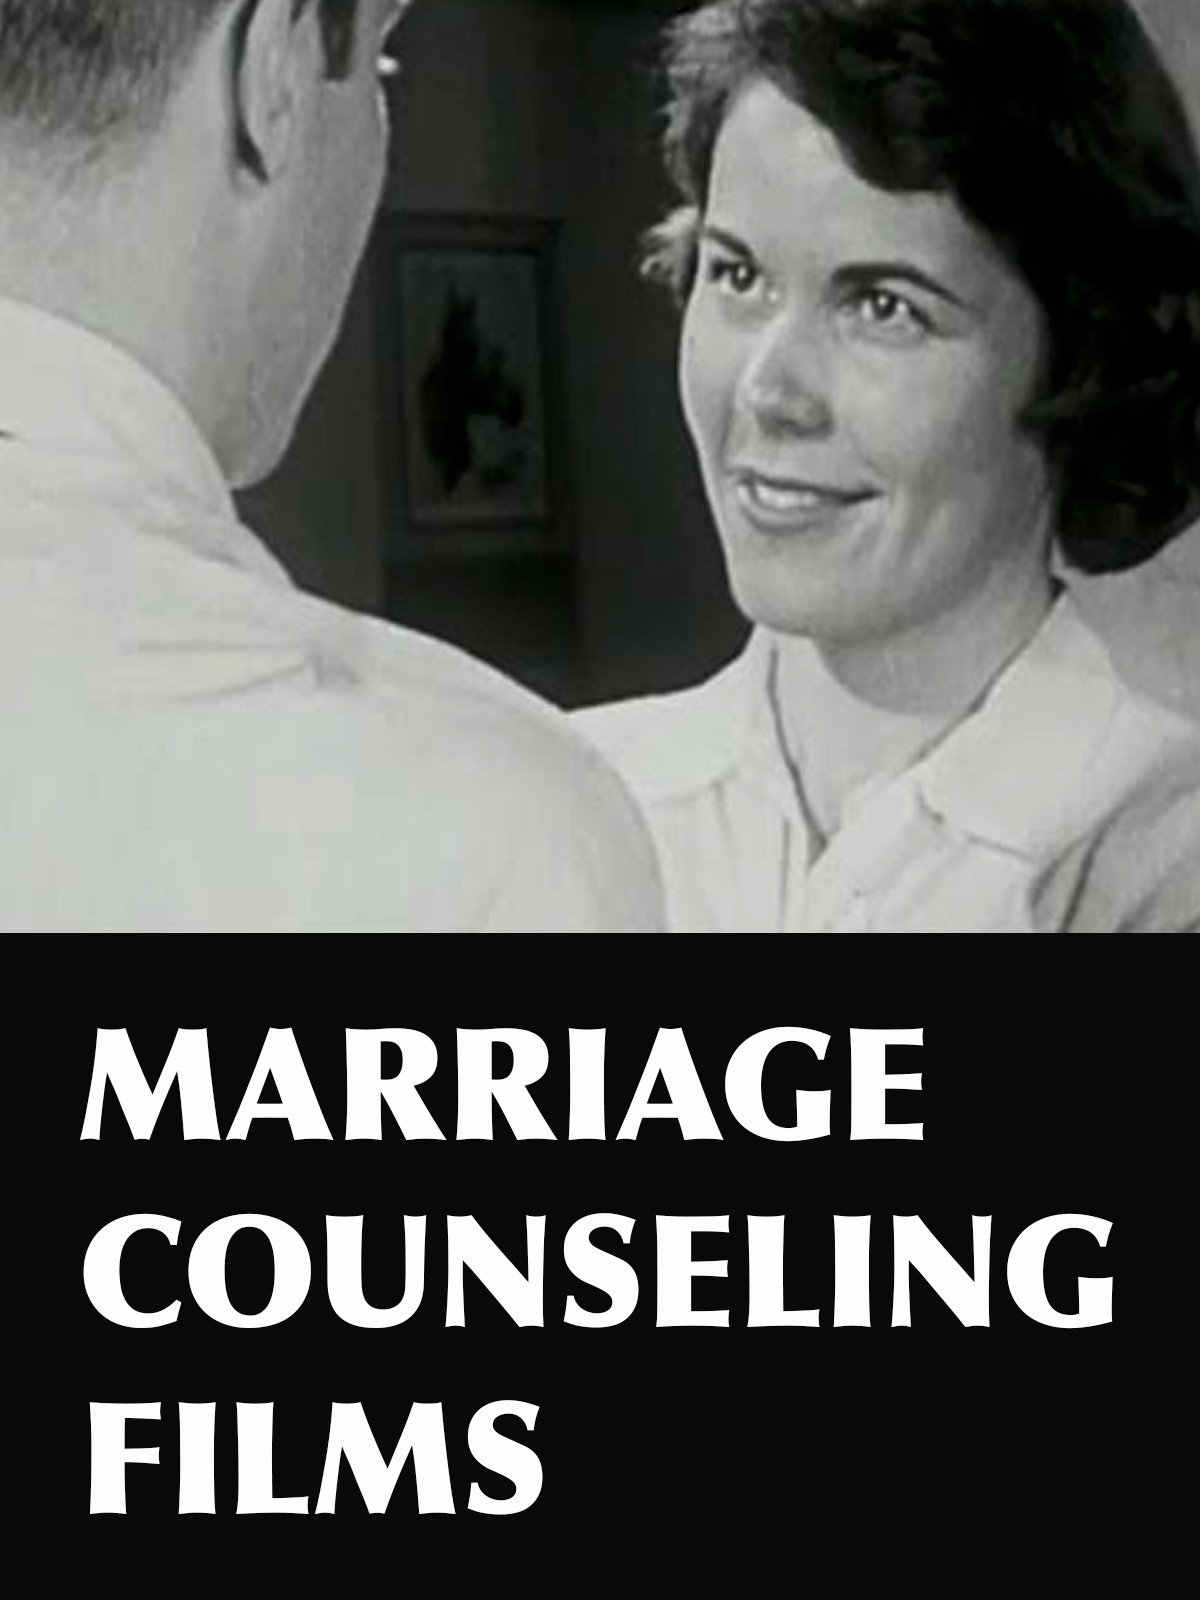 Marriage Counseling Films